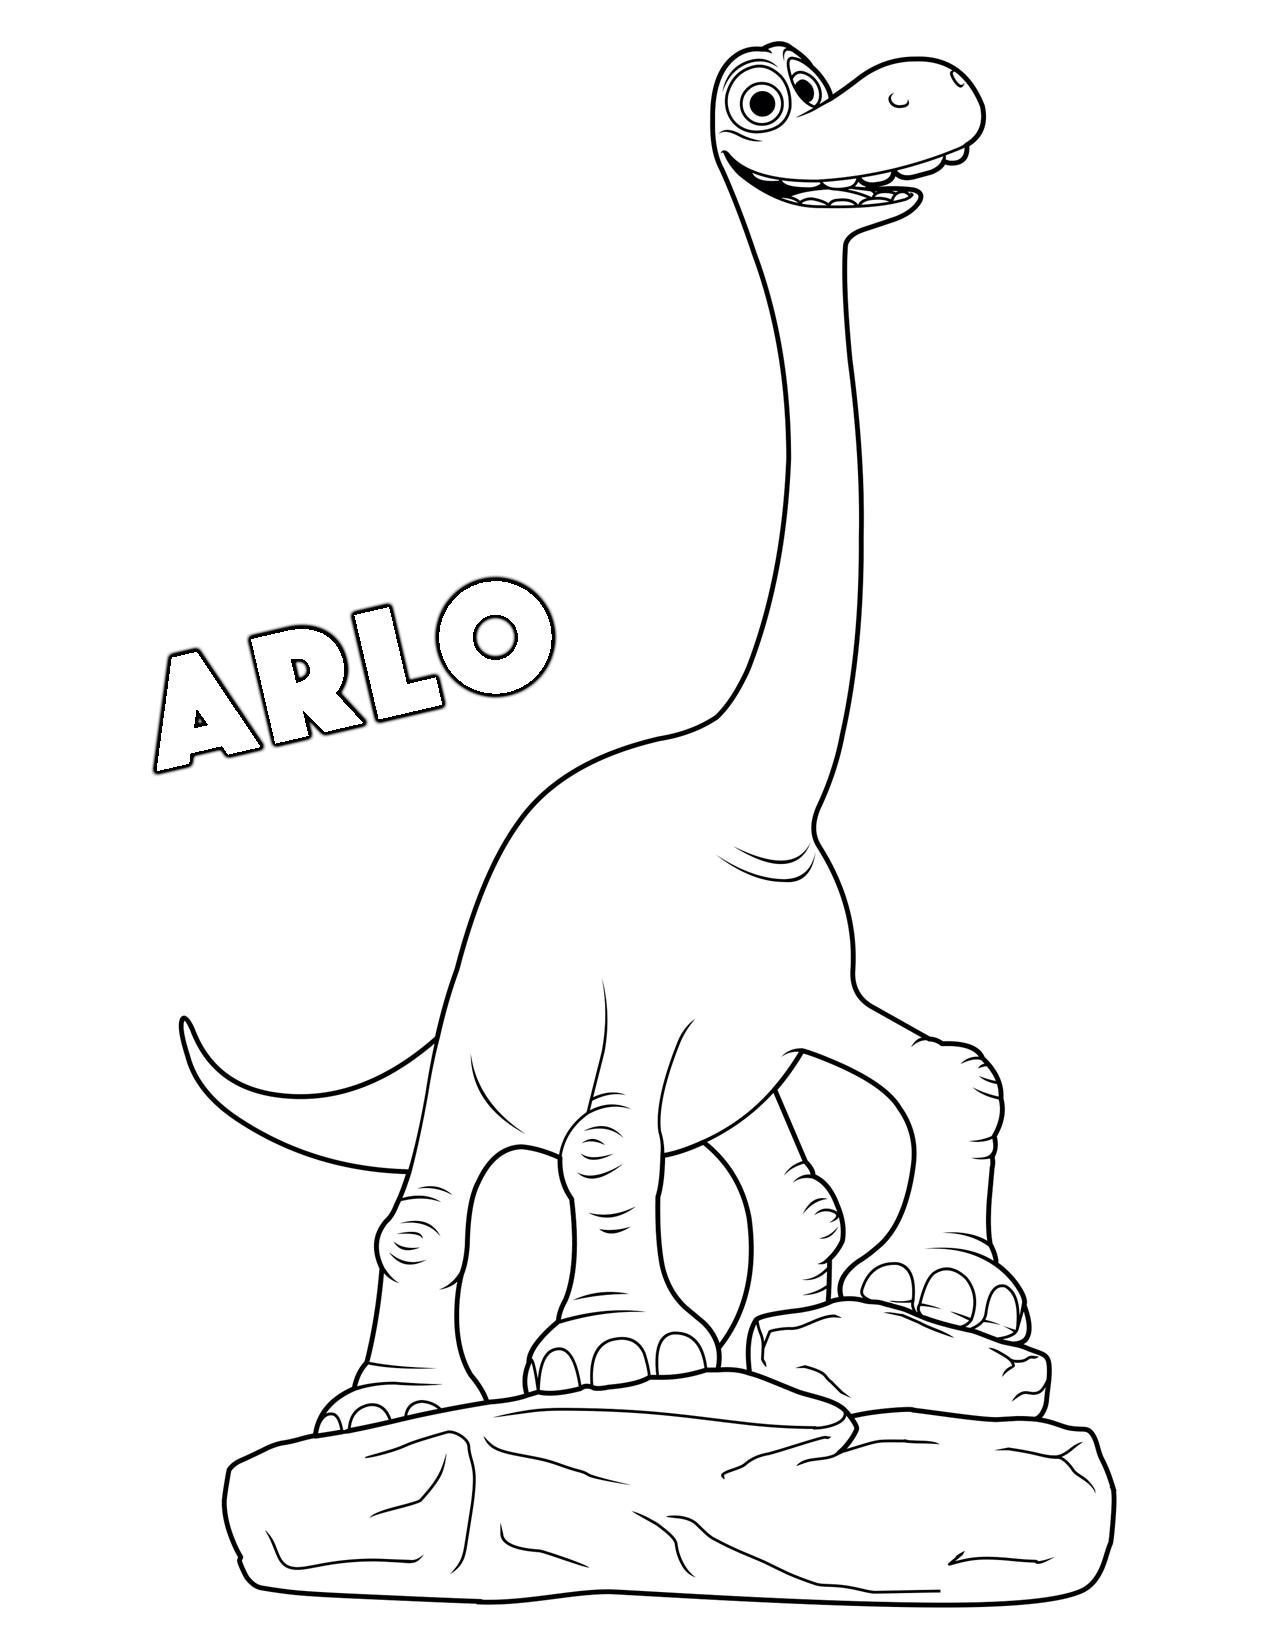 Printable the good dinosaur coloring pages